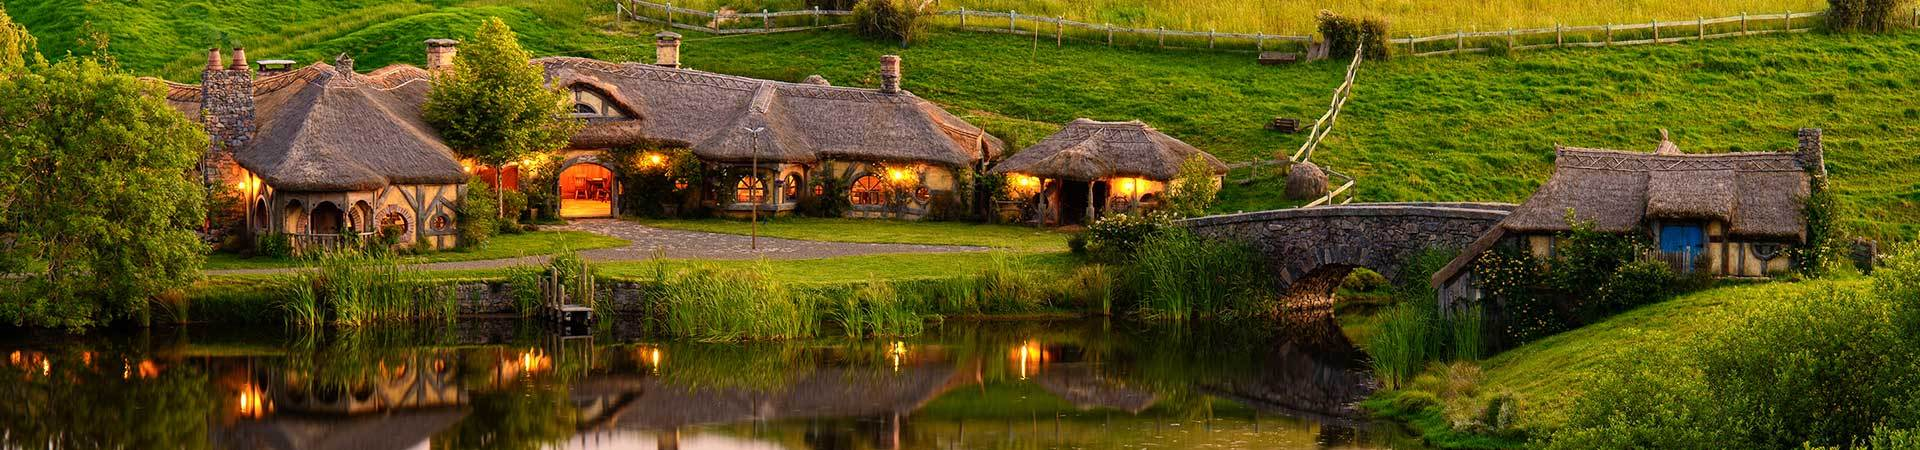 Visit Lord of the Rings locations, New Zealand